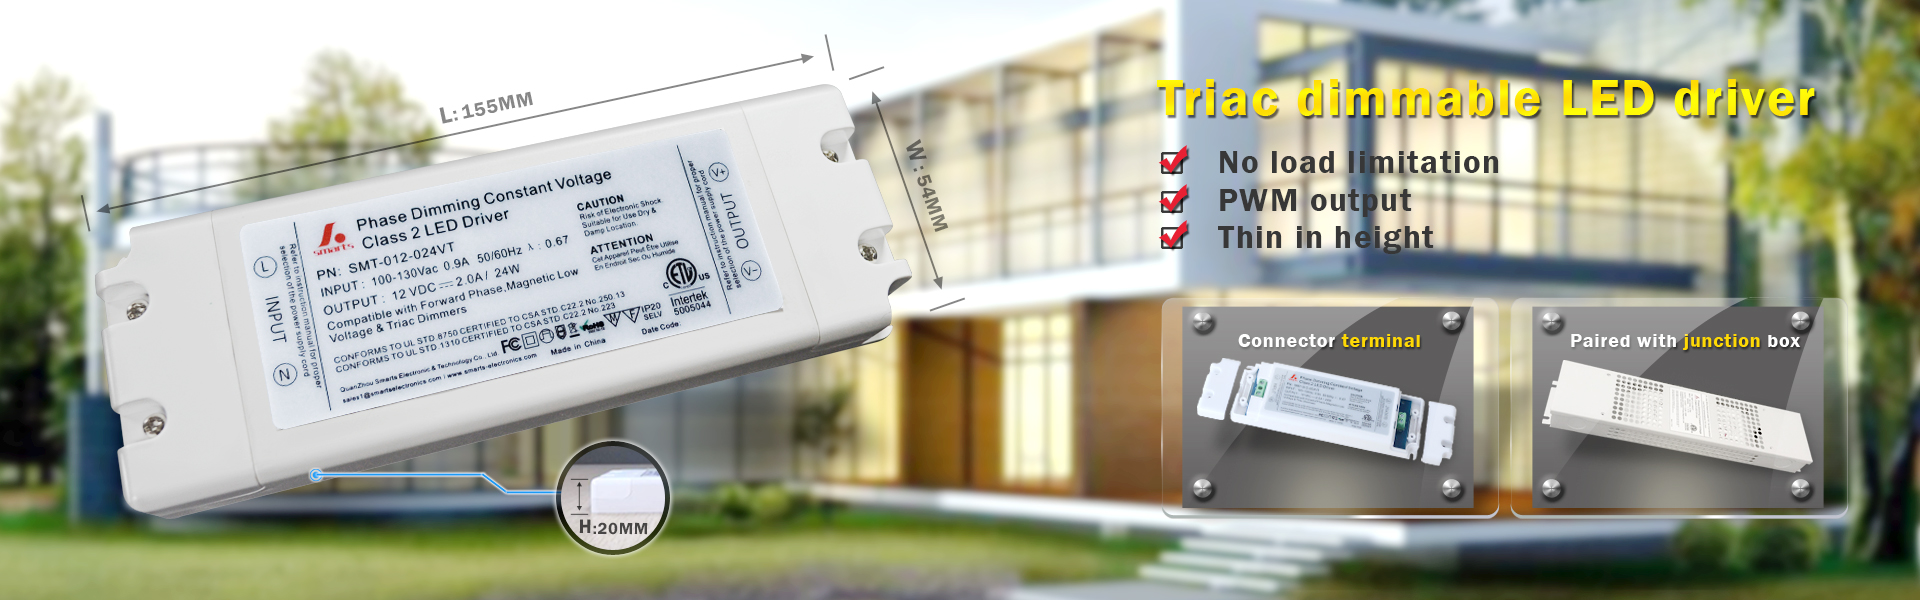 triac dimmable led drivers